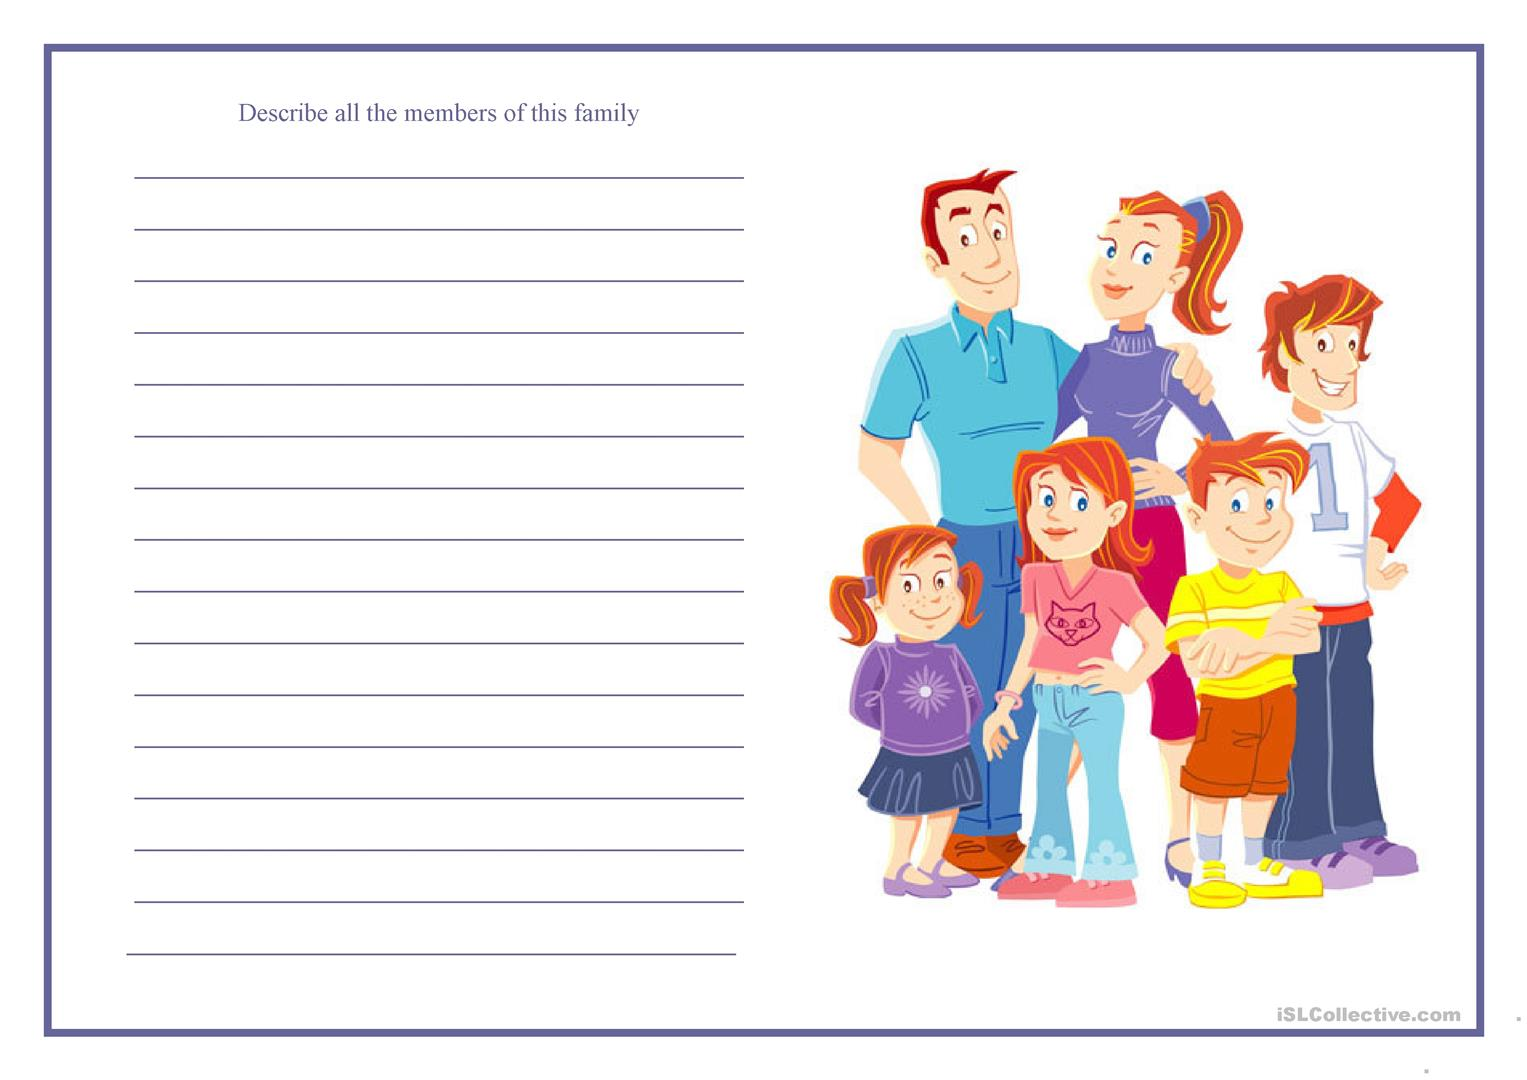 Describe All The Members Of This Family Worksheet